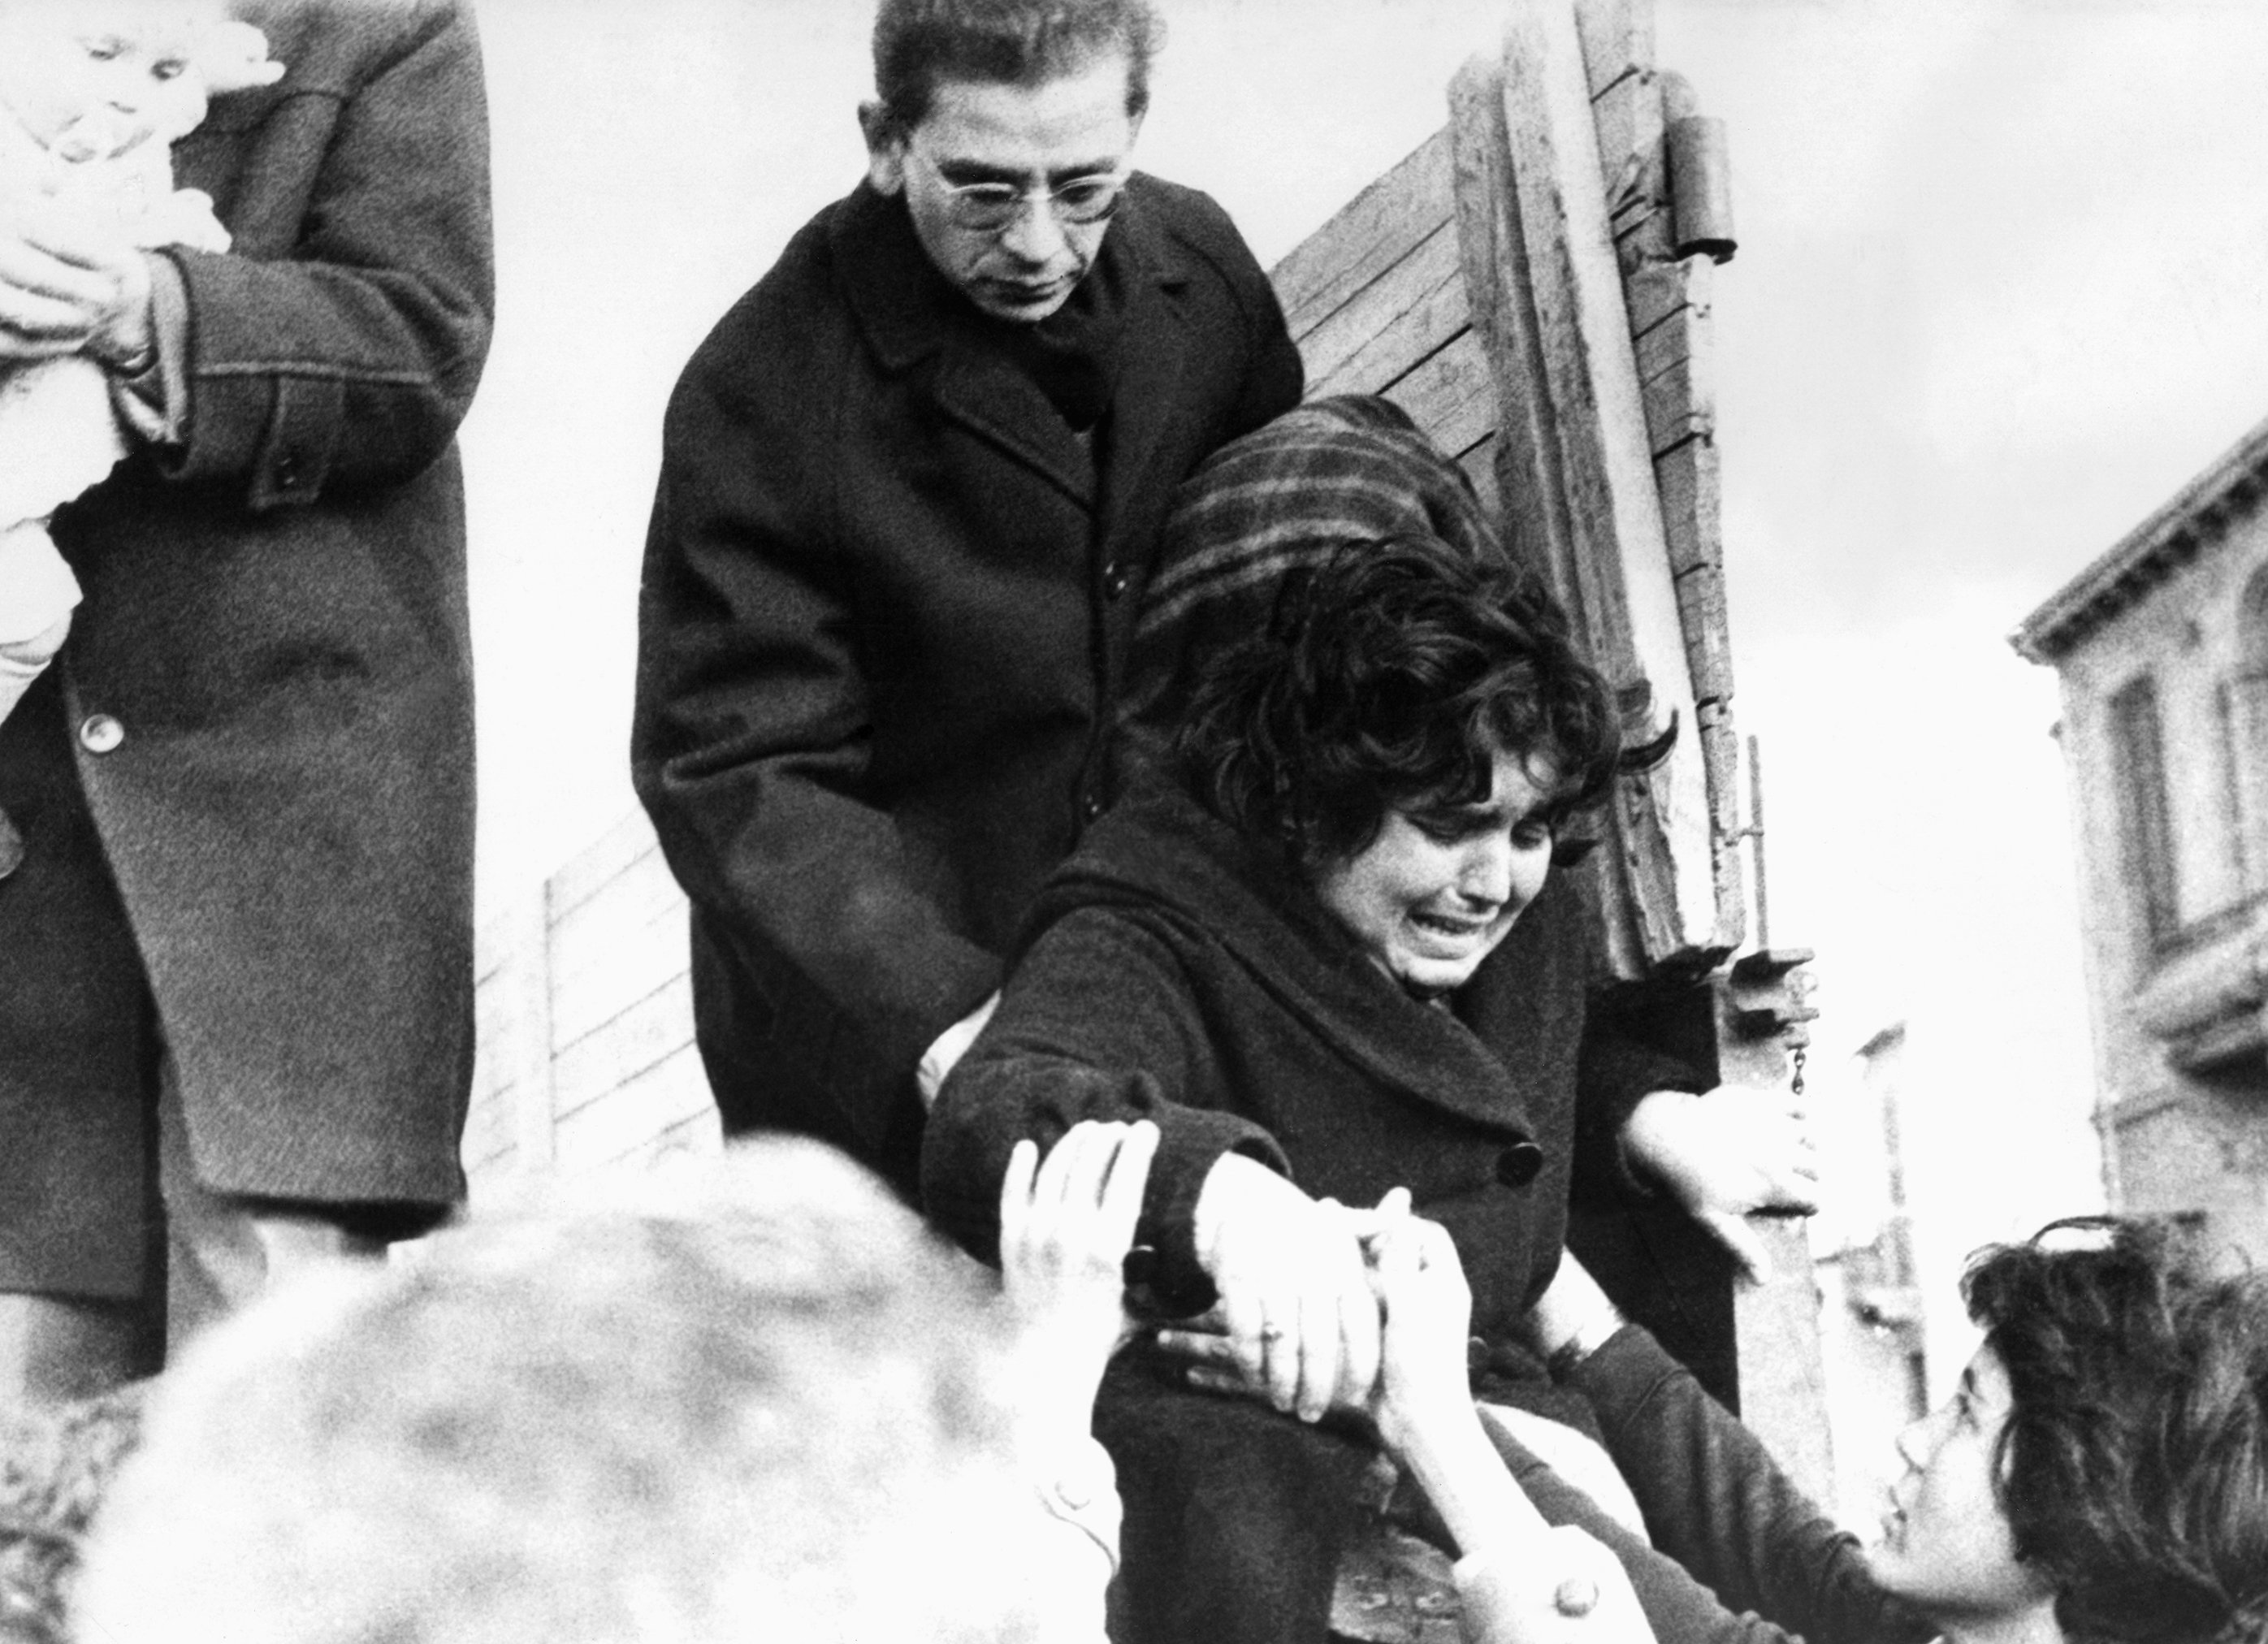 A crying Turkish Cypriot woman inhabitant of the Nicosia suburb of Kaimakli (Kaymaklı) is helped down from a lorry after the Turkish Cypriots in the district had evacuated their homes on Dec. 27, 1963 to seek safe refuge in the border of the Greek and Turkish quarter of the city. (AP Photo)